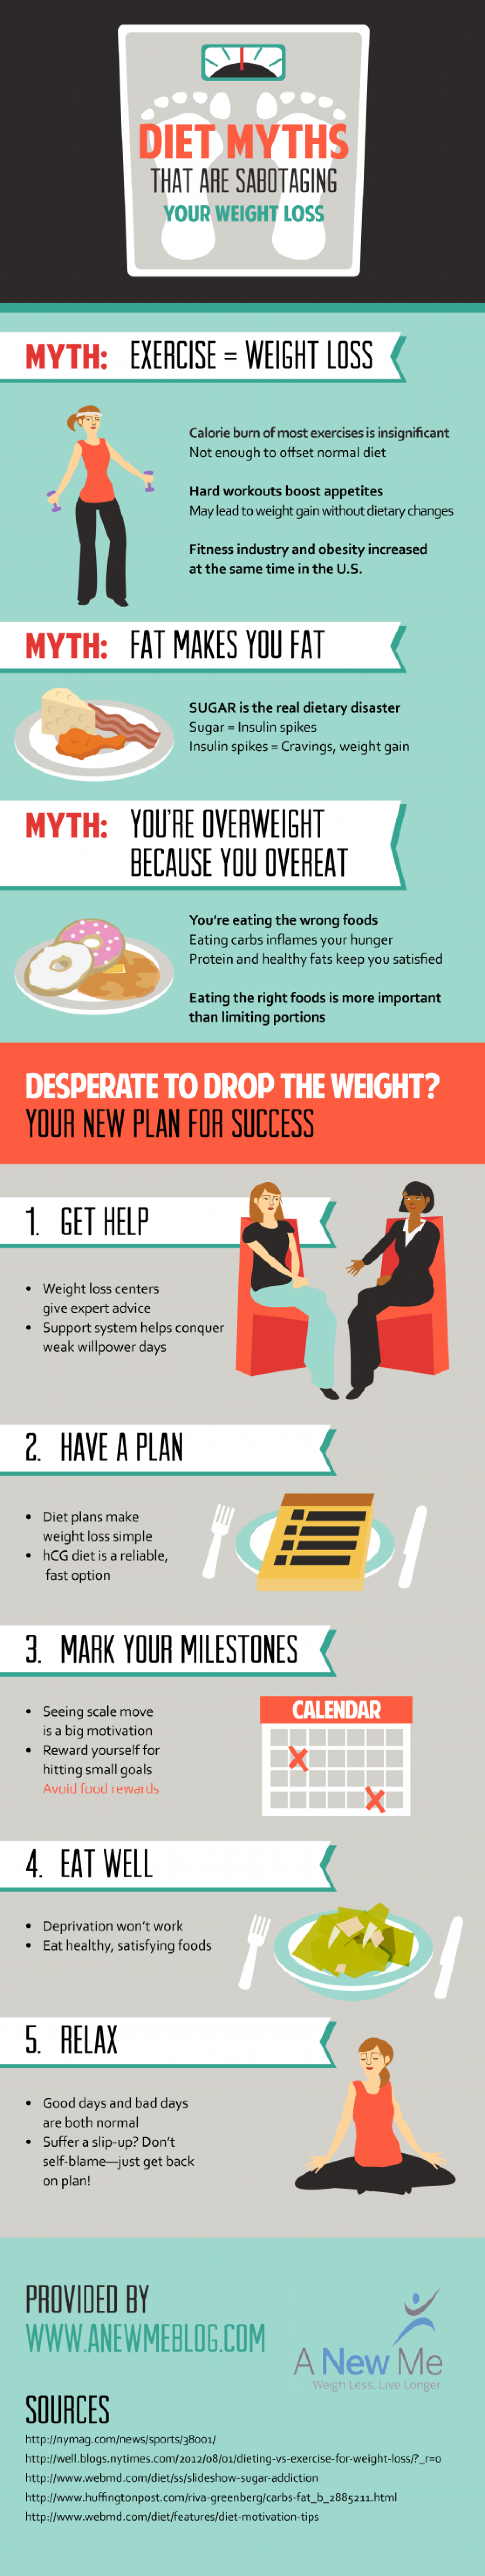 Diet Myths That Are Sabotaging Your Weight Loss Infographic